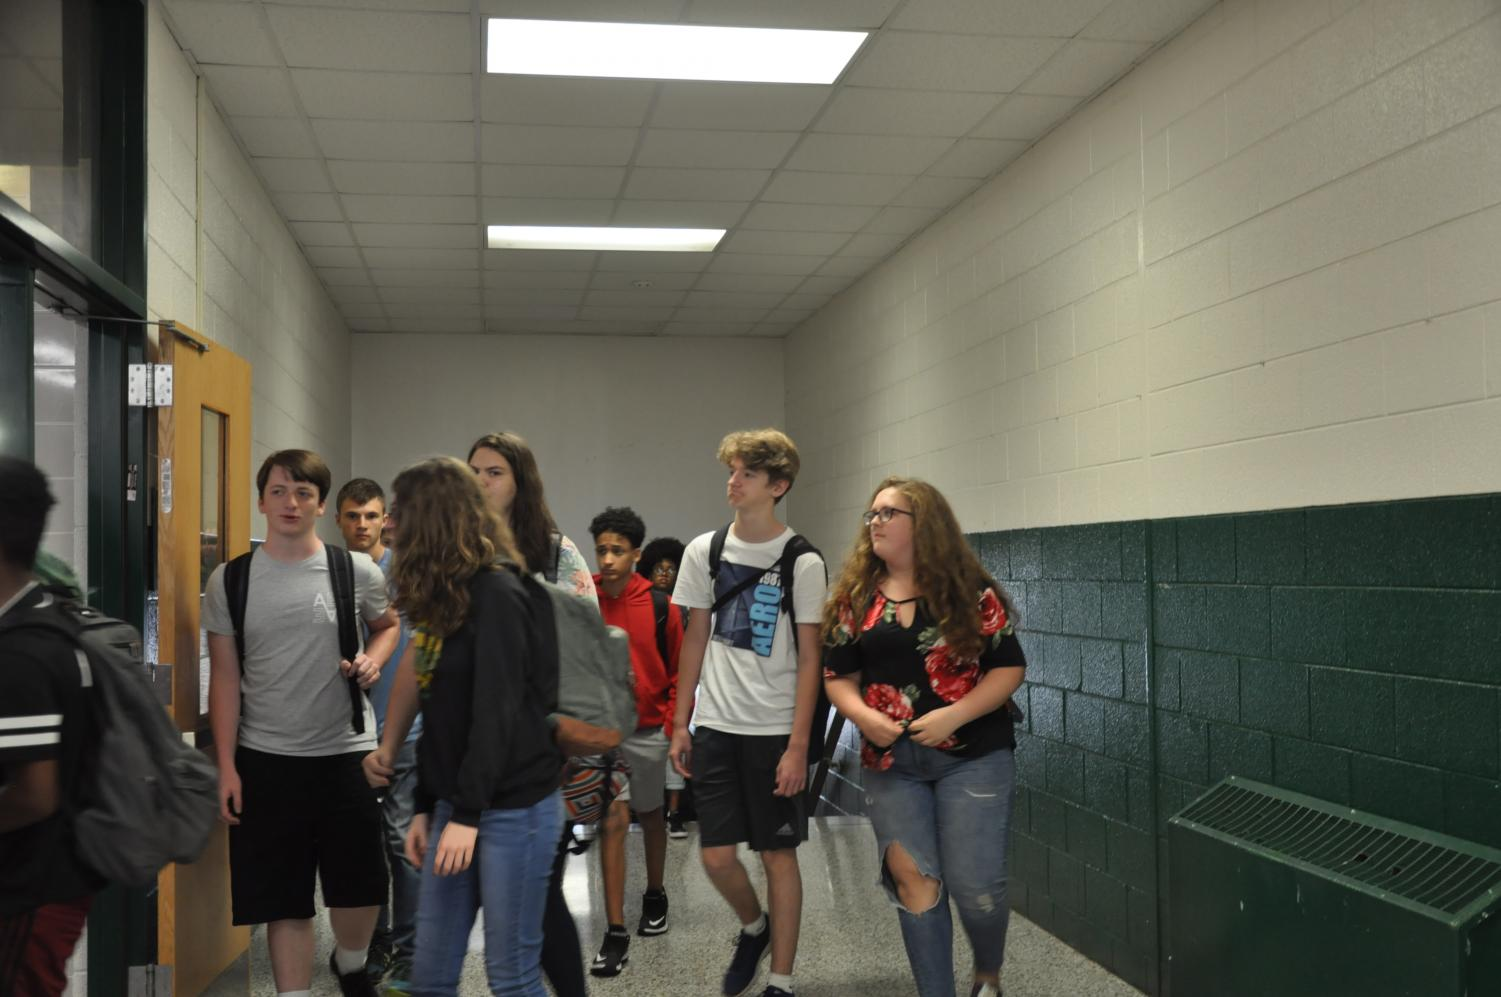 Students show off what they wear while walking to lunch. What kind of impression did your first day outfit give off?